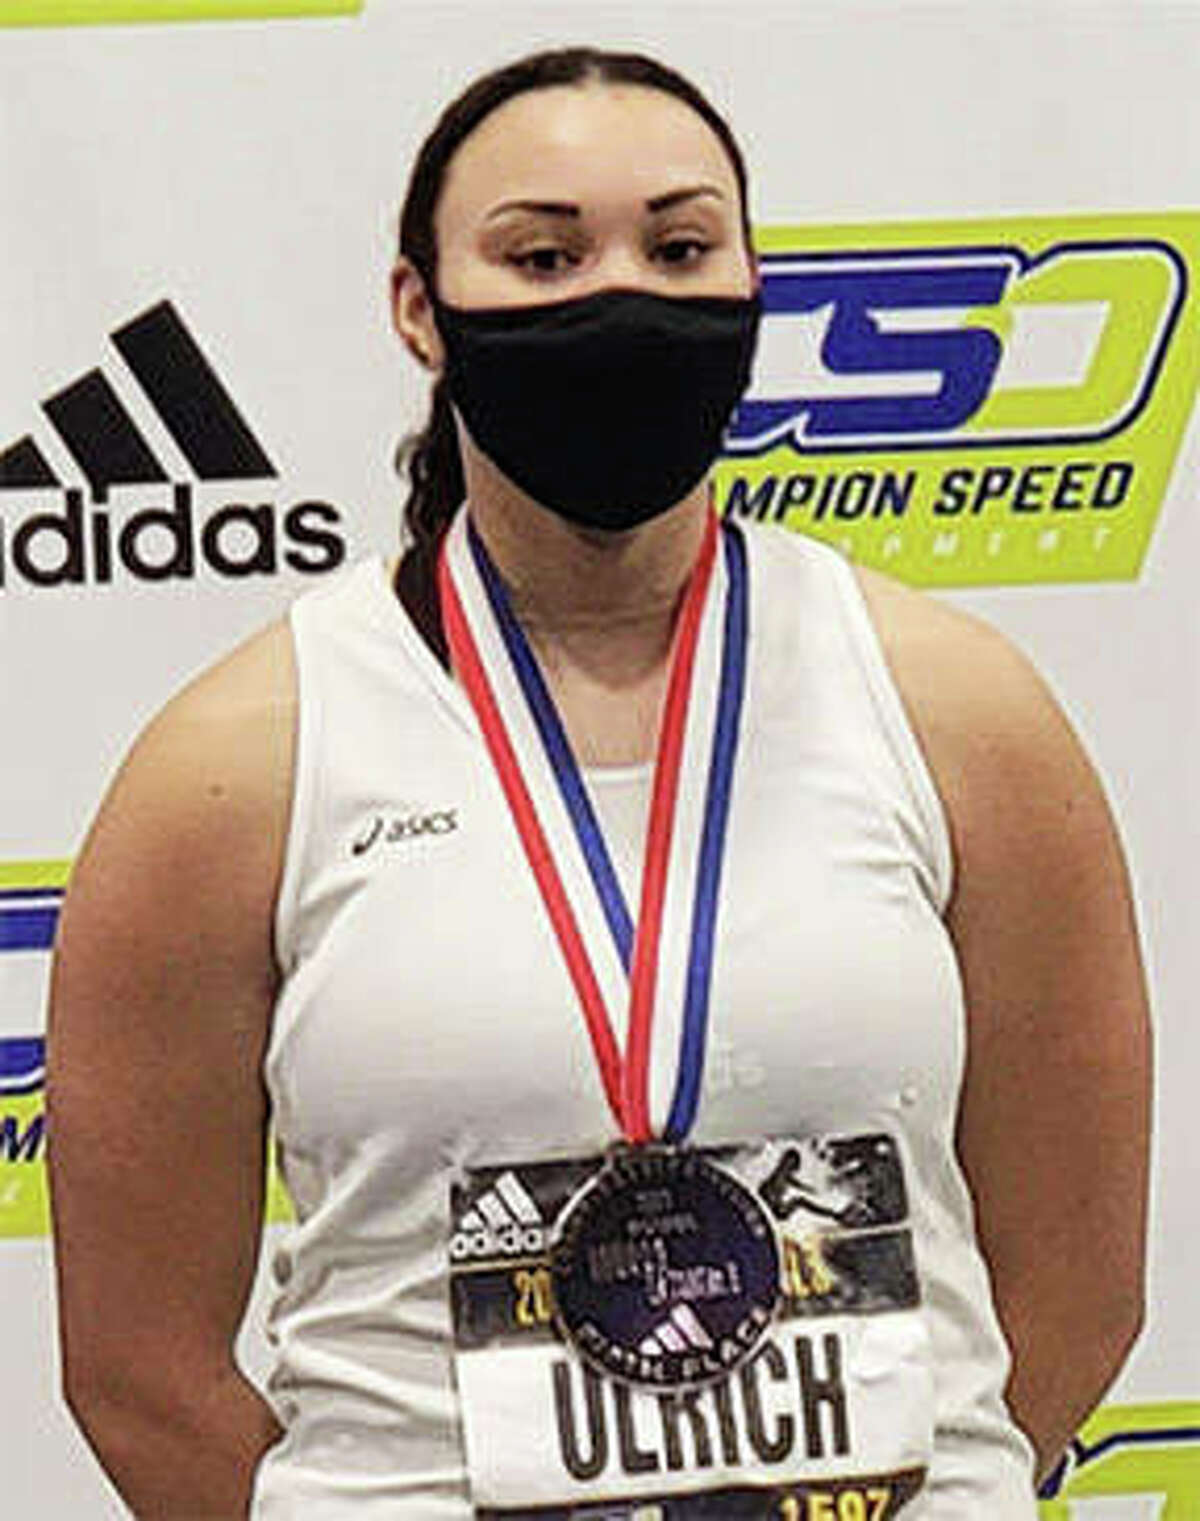 Wood River's Jayden Ulrich poses with her fifth-place medal in the shot put at the 2021 adidas Indoor Nationals at Virginia Beach Sport Center on Feb. 28 at Virginia Beach, Va.